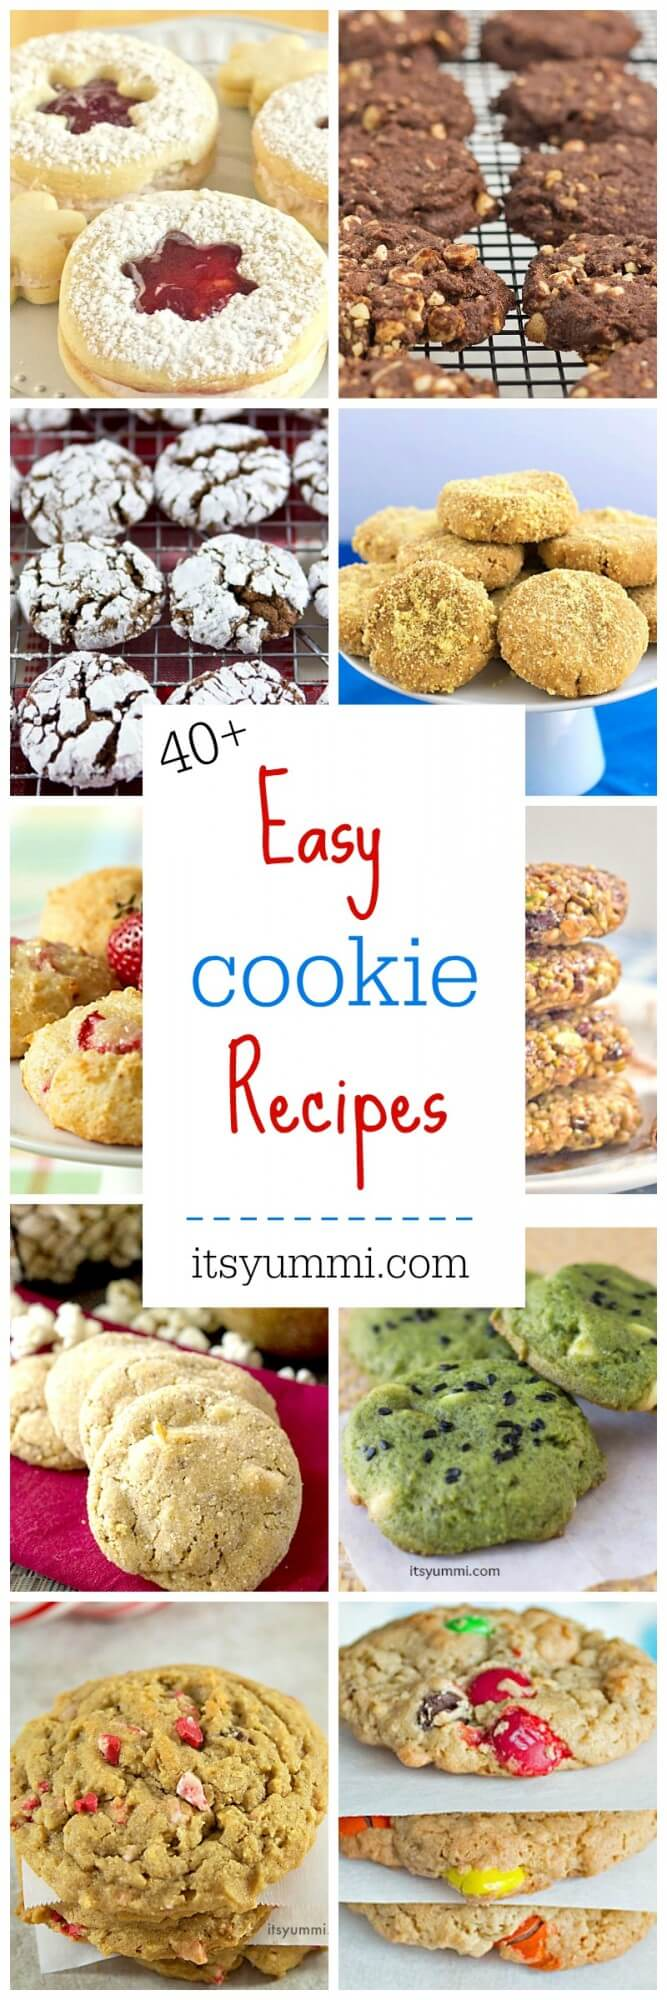 The easiest cookie recipes for 2018, all in one place! No bake cookies, cookies with nuts, and even healthier cookie recipes. See all of the easy cookie recipes for 2018 on itsyummi.com!